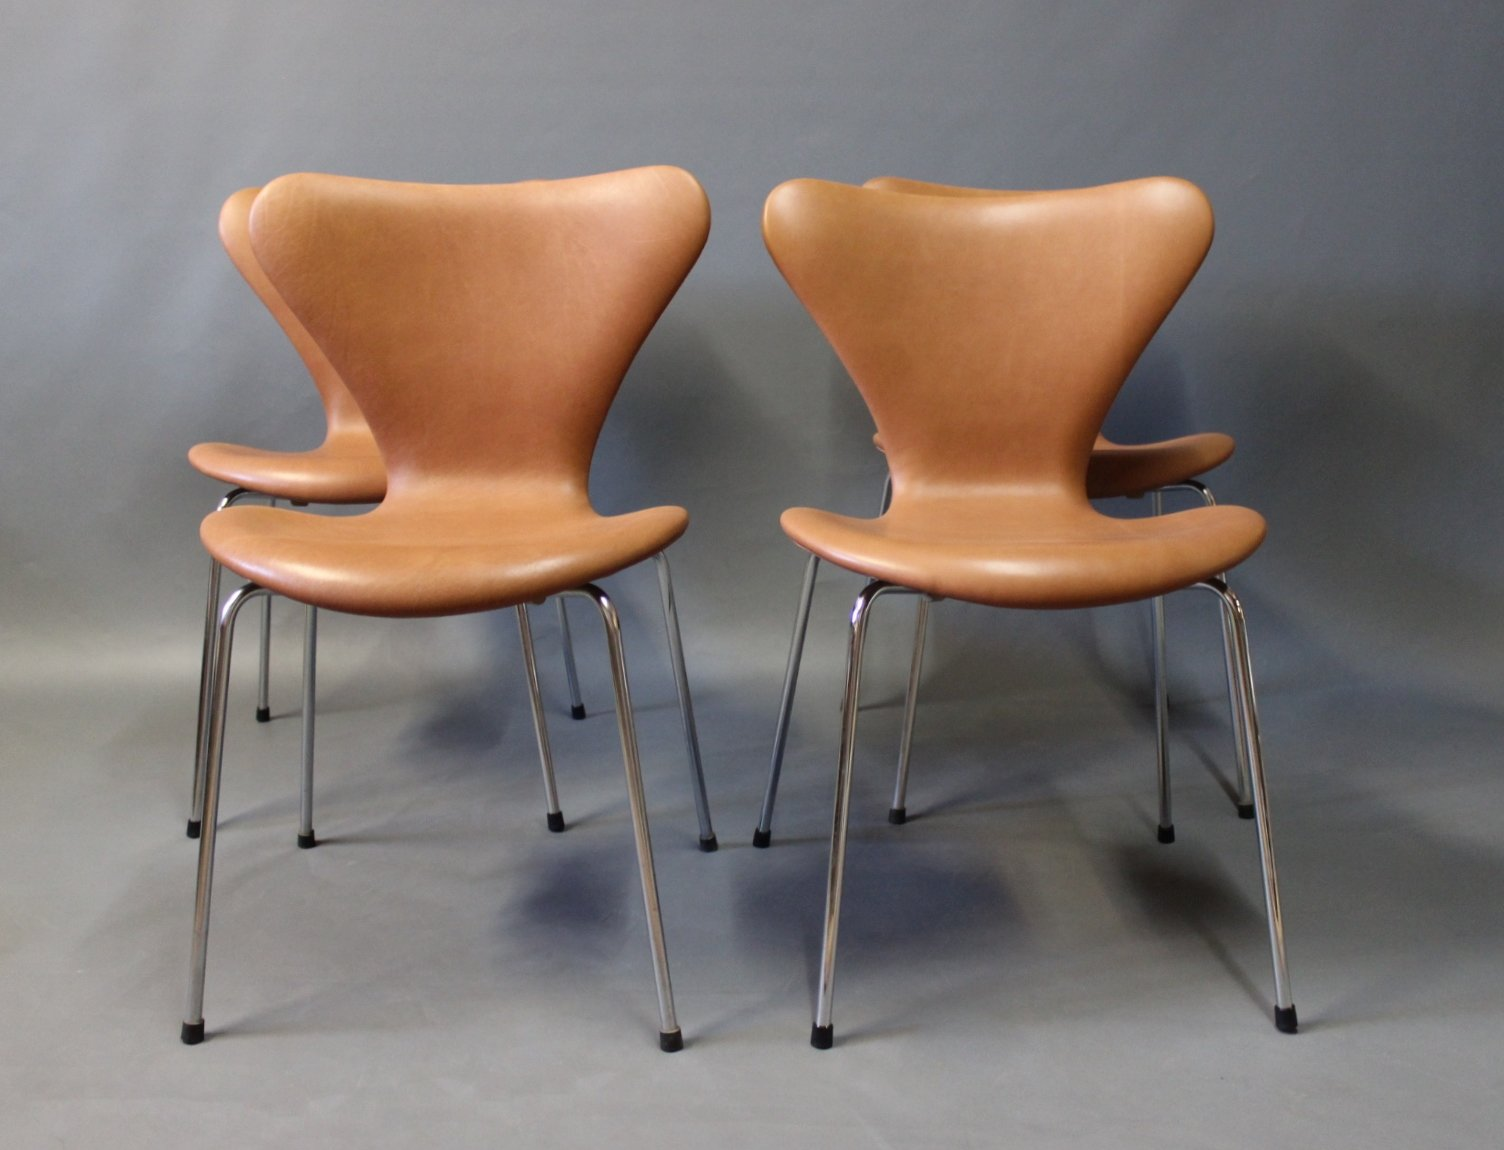 This arne jacobsen swan chair in cognac leather by fritz hansen is no - Cognac Leather Model Seven Chairs By Arne Jacobsen For Fritz Hansen 1967 Set Of 4